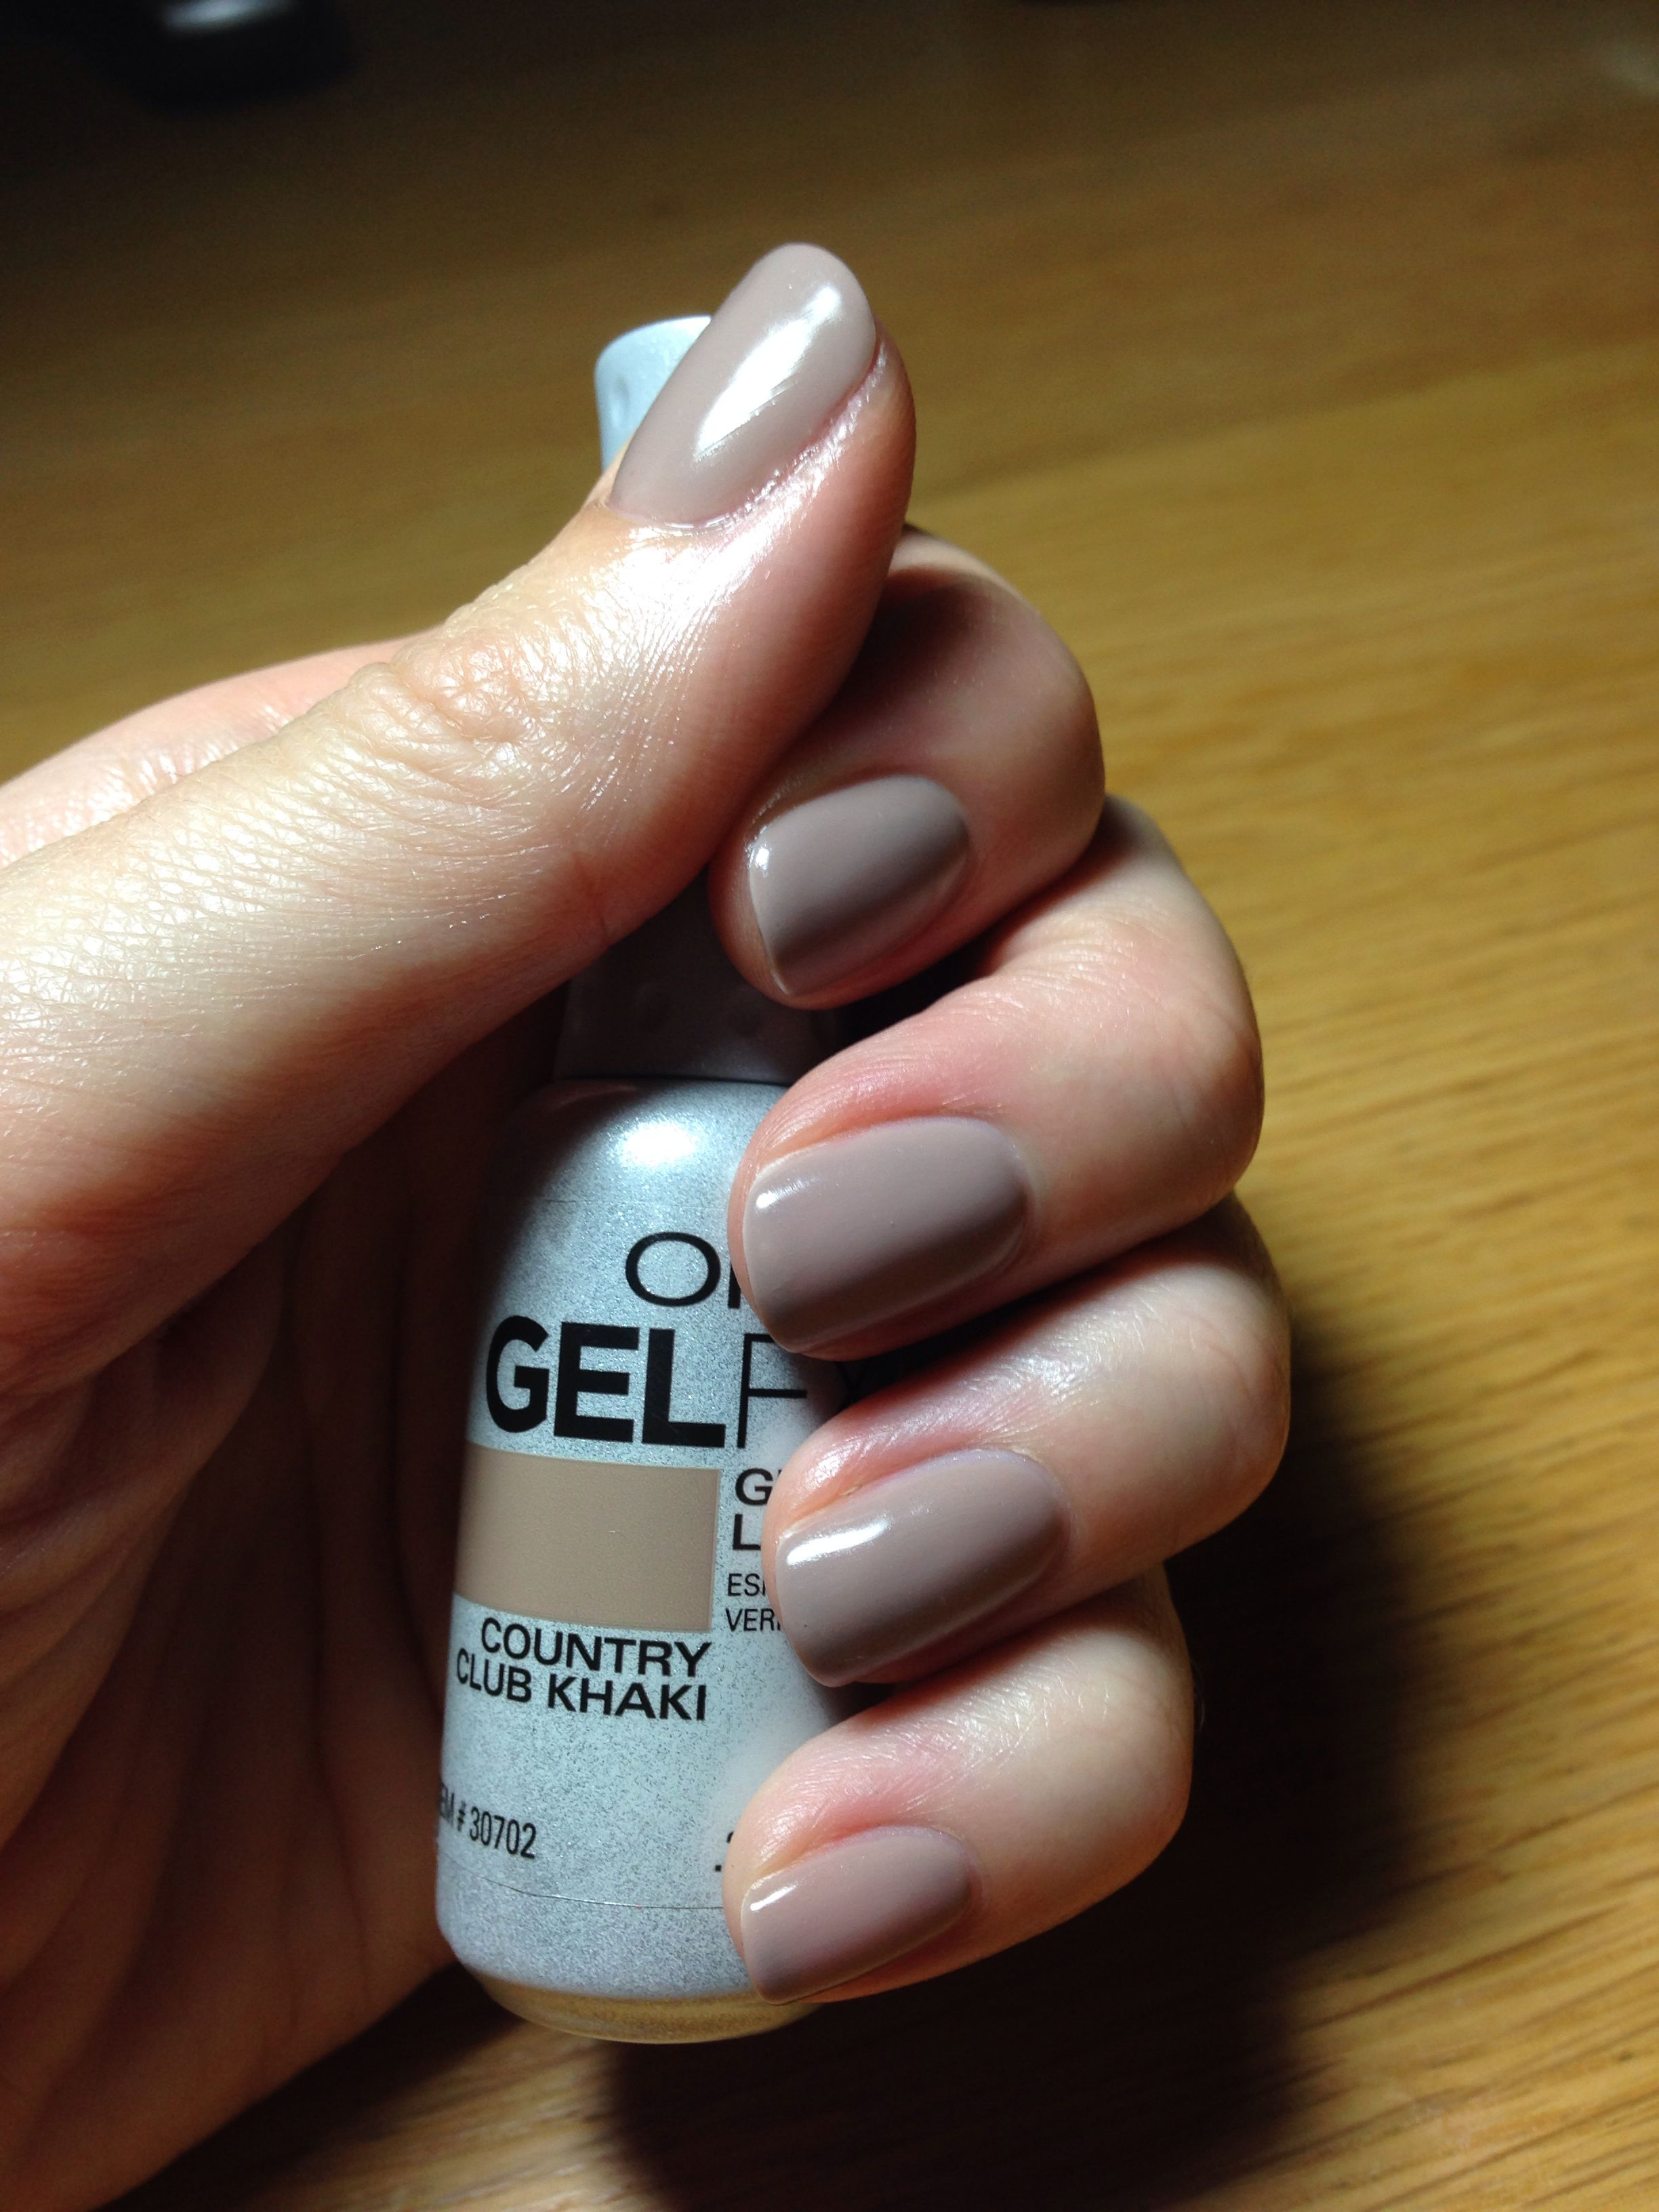 Orly Gel FX | Fashion & style | Nails, Gel nails, Gel nail colors